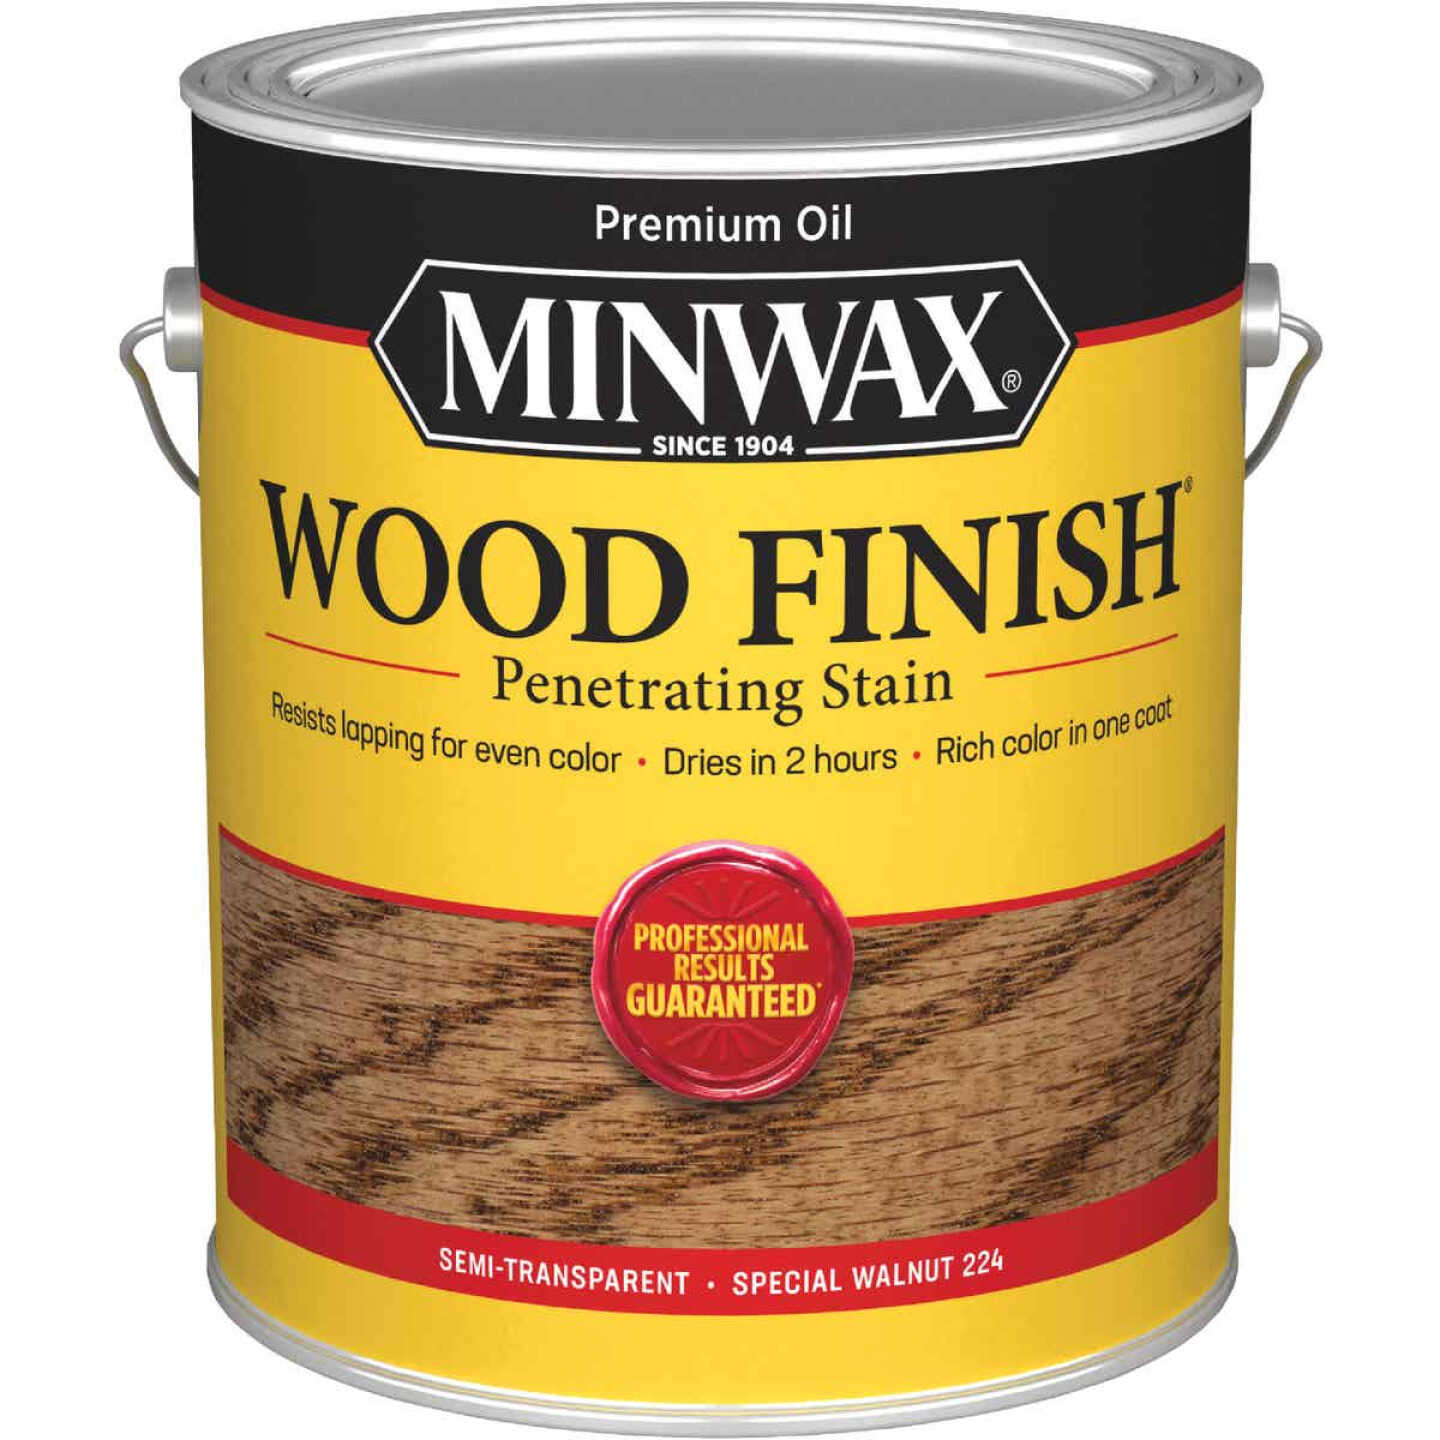 Minwax Wood Finish Penetrating Stain, Special Walnut, 1 Gal. Image 1